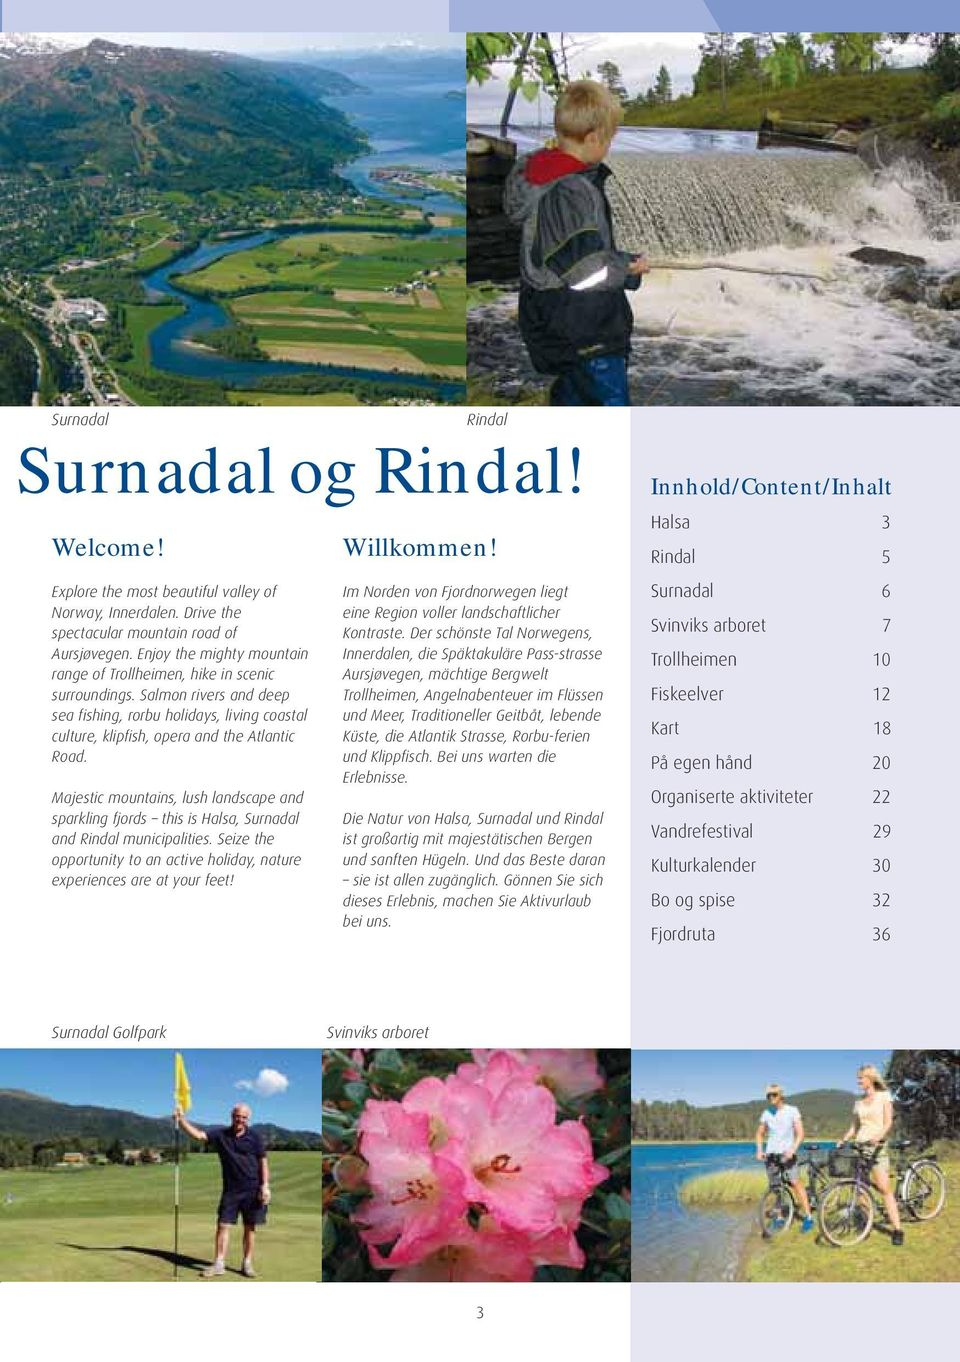 Majestic mountains, lush landscape and sparkling fjords this is Halsa, Surnadal and Rindal municipalities. Seize the opportunity to an active holiday, nature experiences are at your feet!